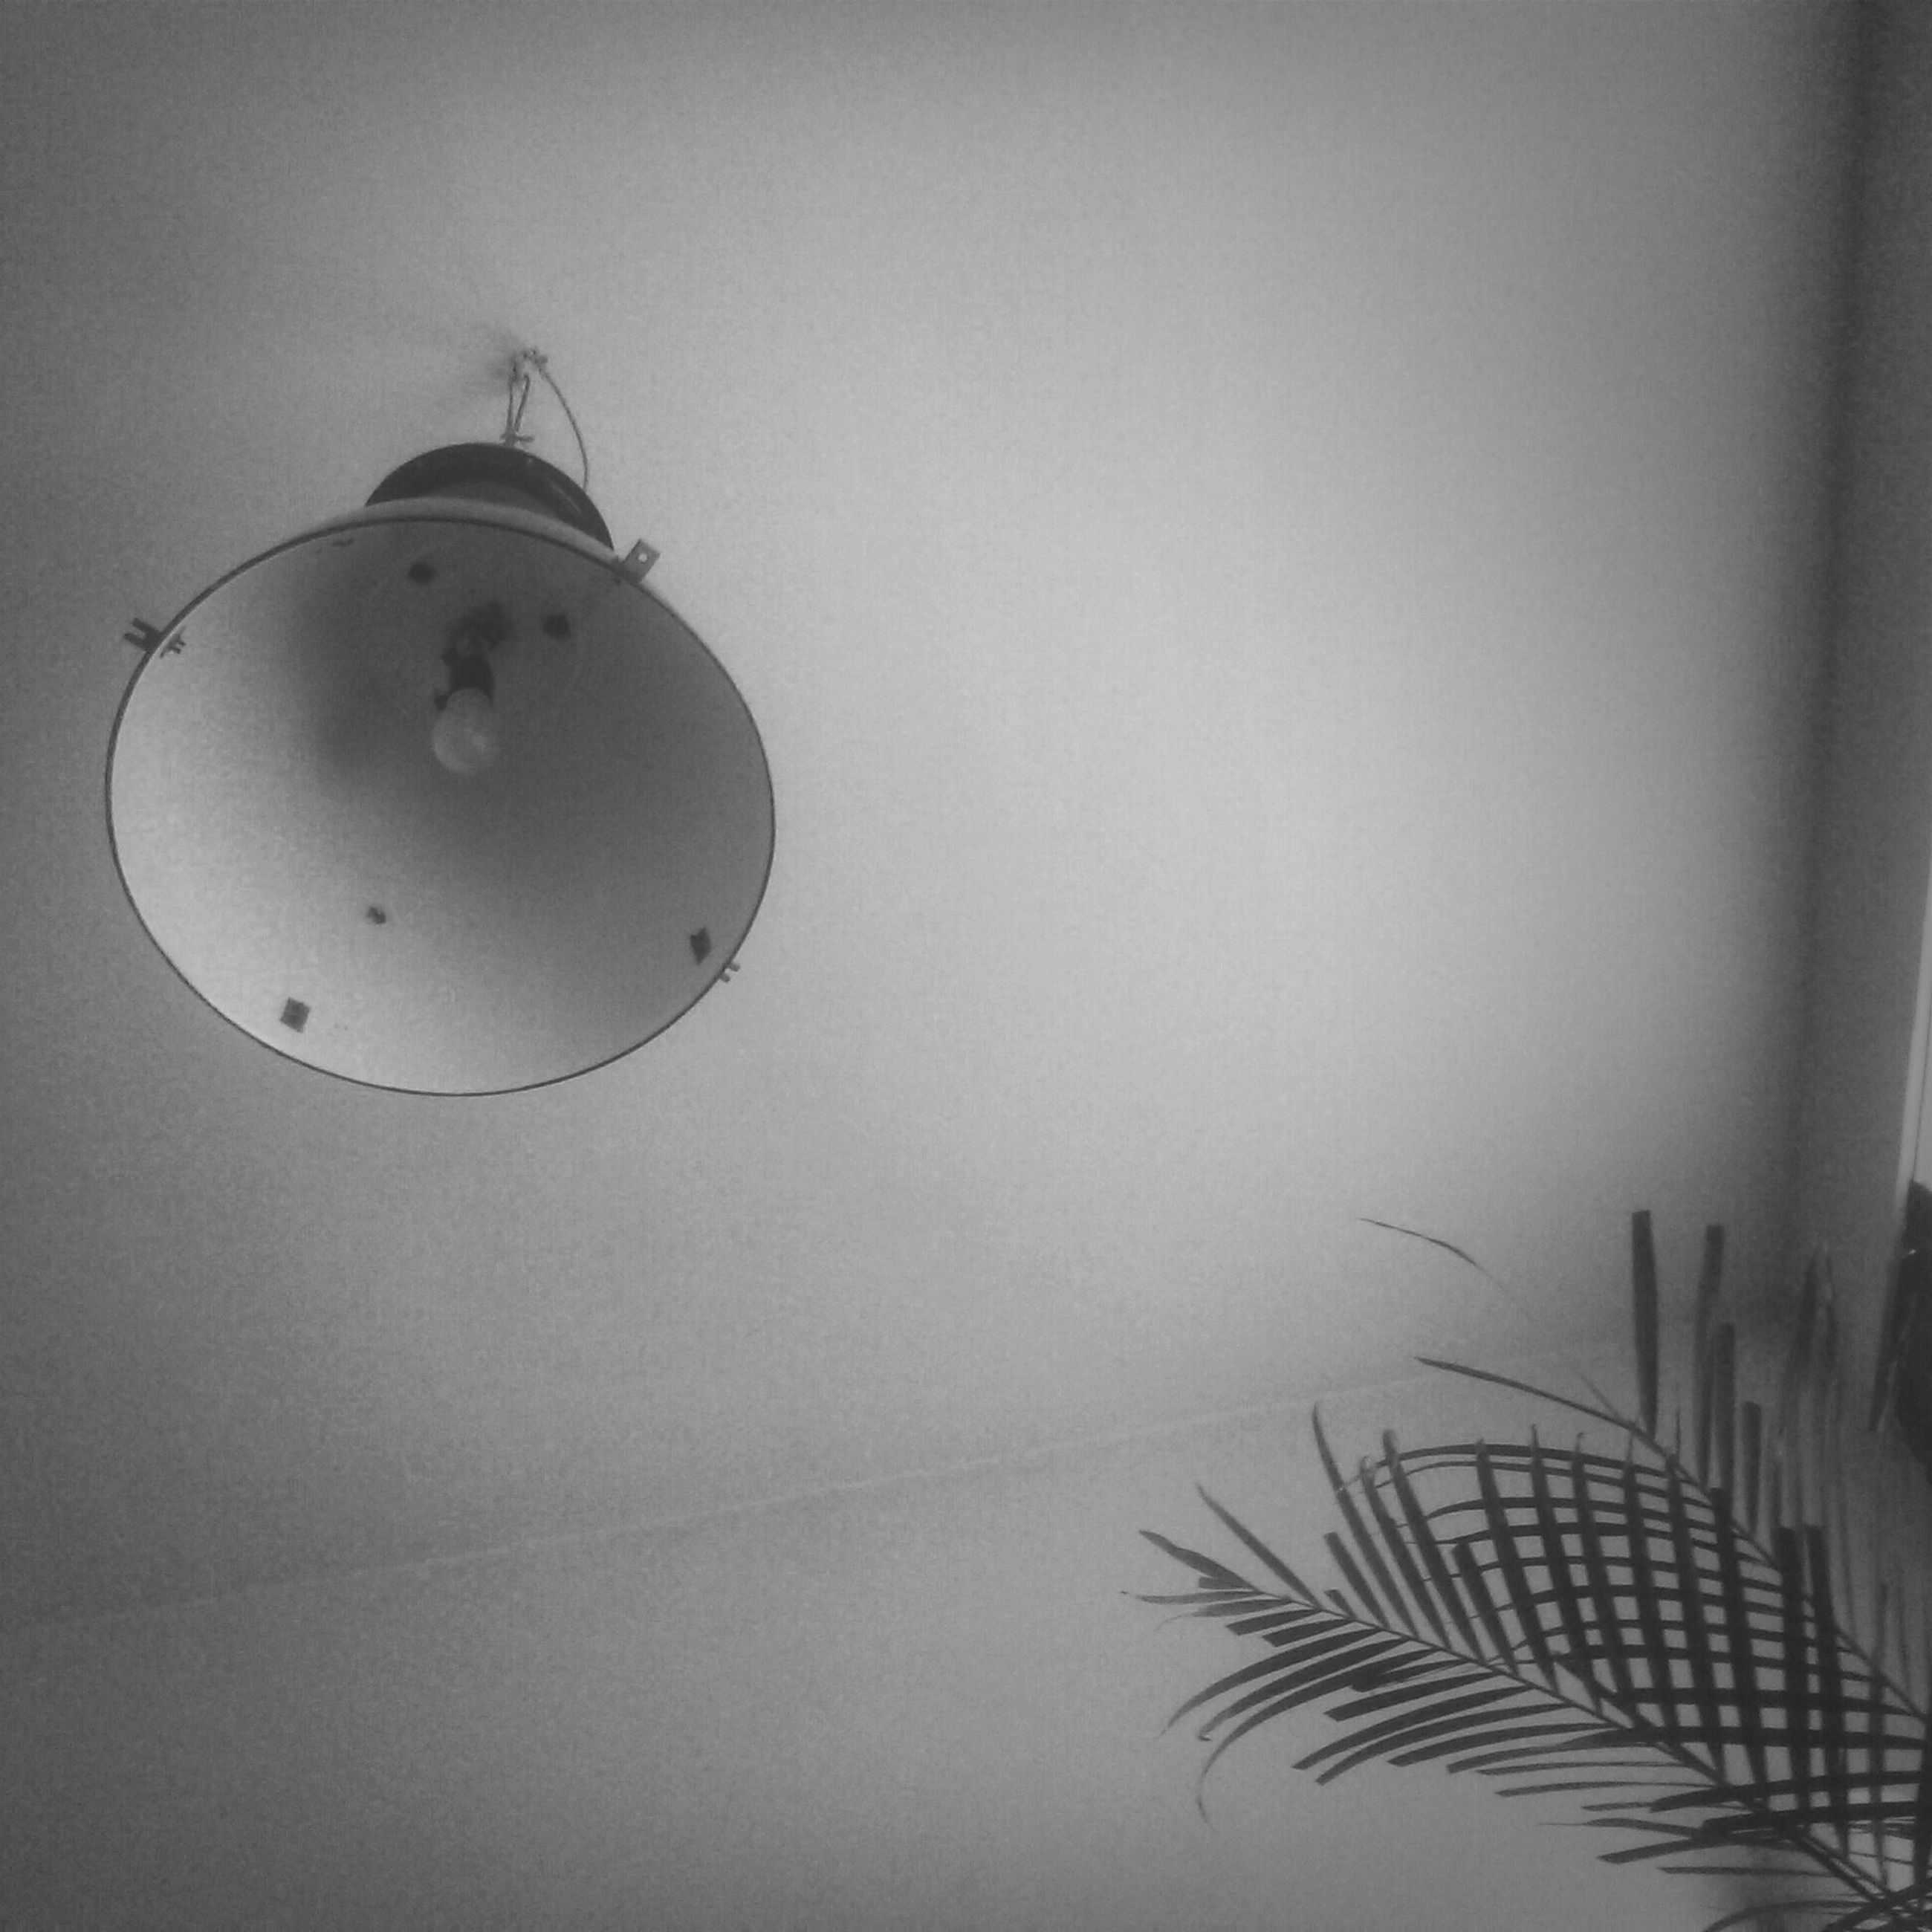 indoors, low angle view, copy space, wall - building feature, lighting equipment, hanging, home interior, ceiling, decoration, close-up, no people, wall, built structure, electric lamp, art and craft, architecture, day, decor, art, creativity